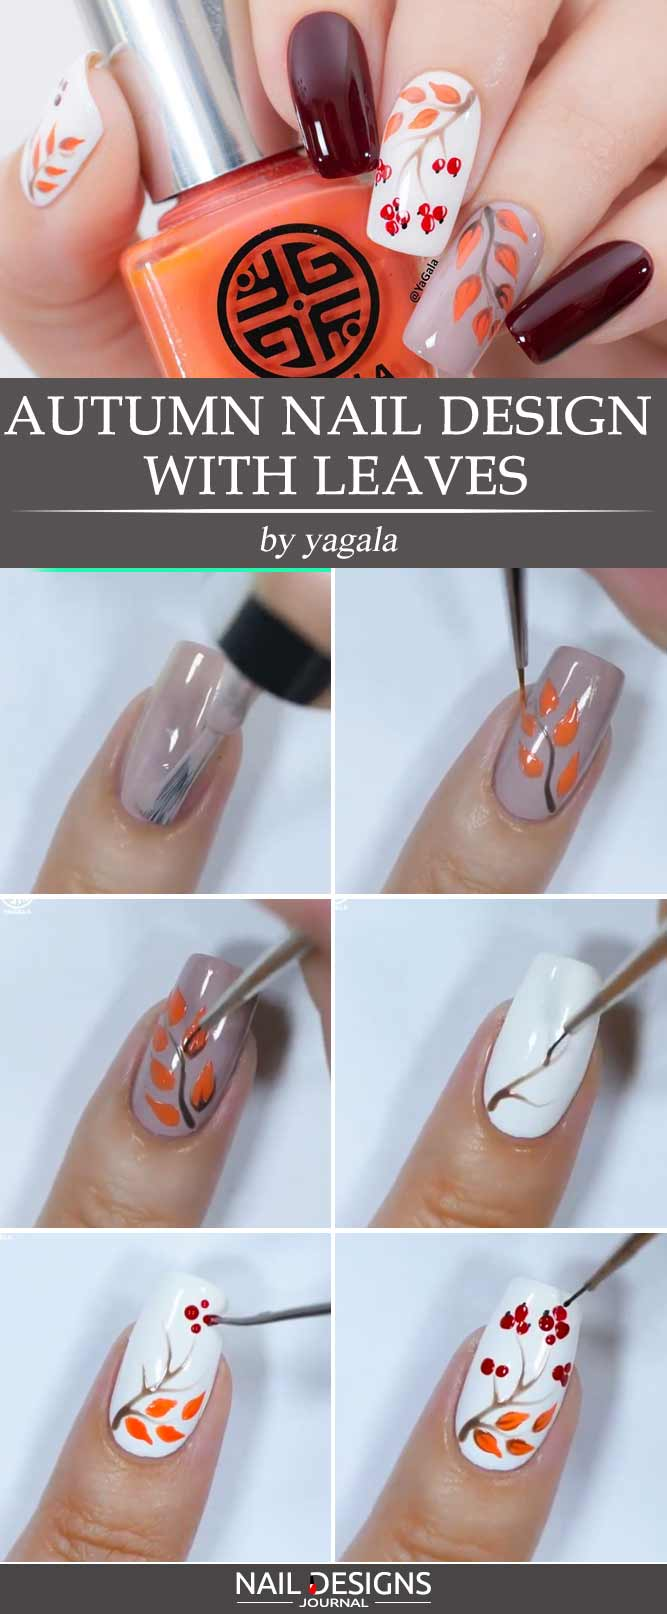 Autumn Nail Design With Leaves